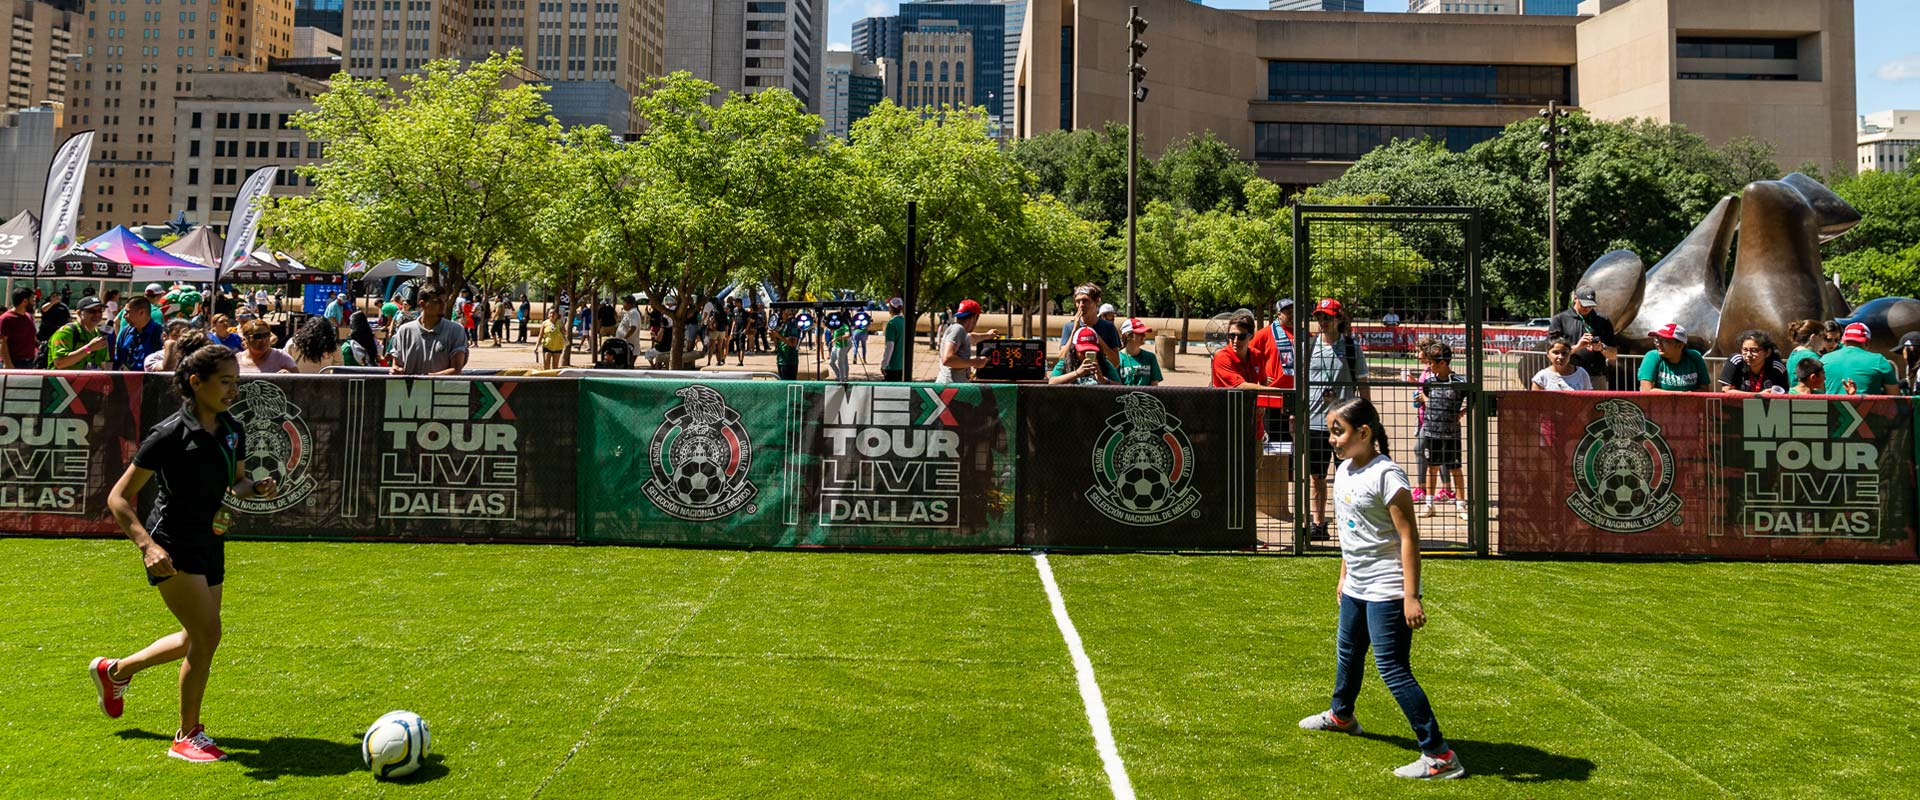 DALLAS HOSTING THE WORLD CUP? IT COULD HAPPEN IN 2026